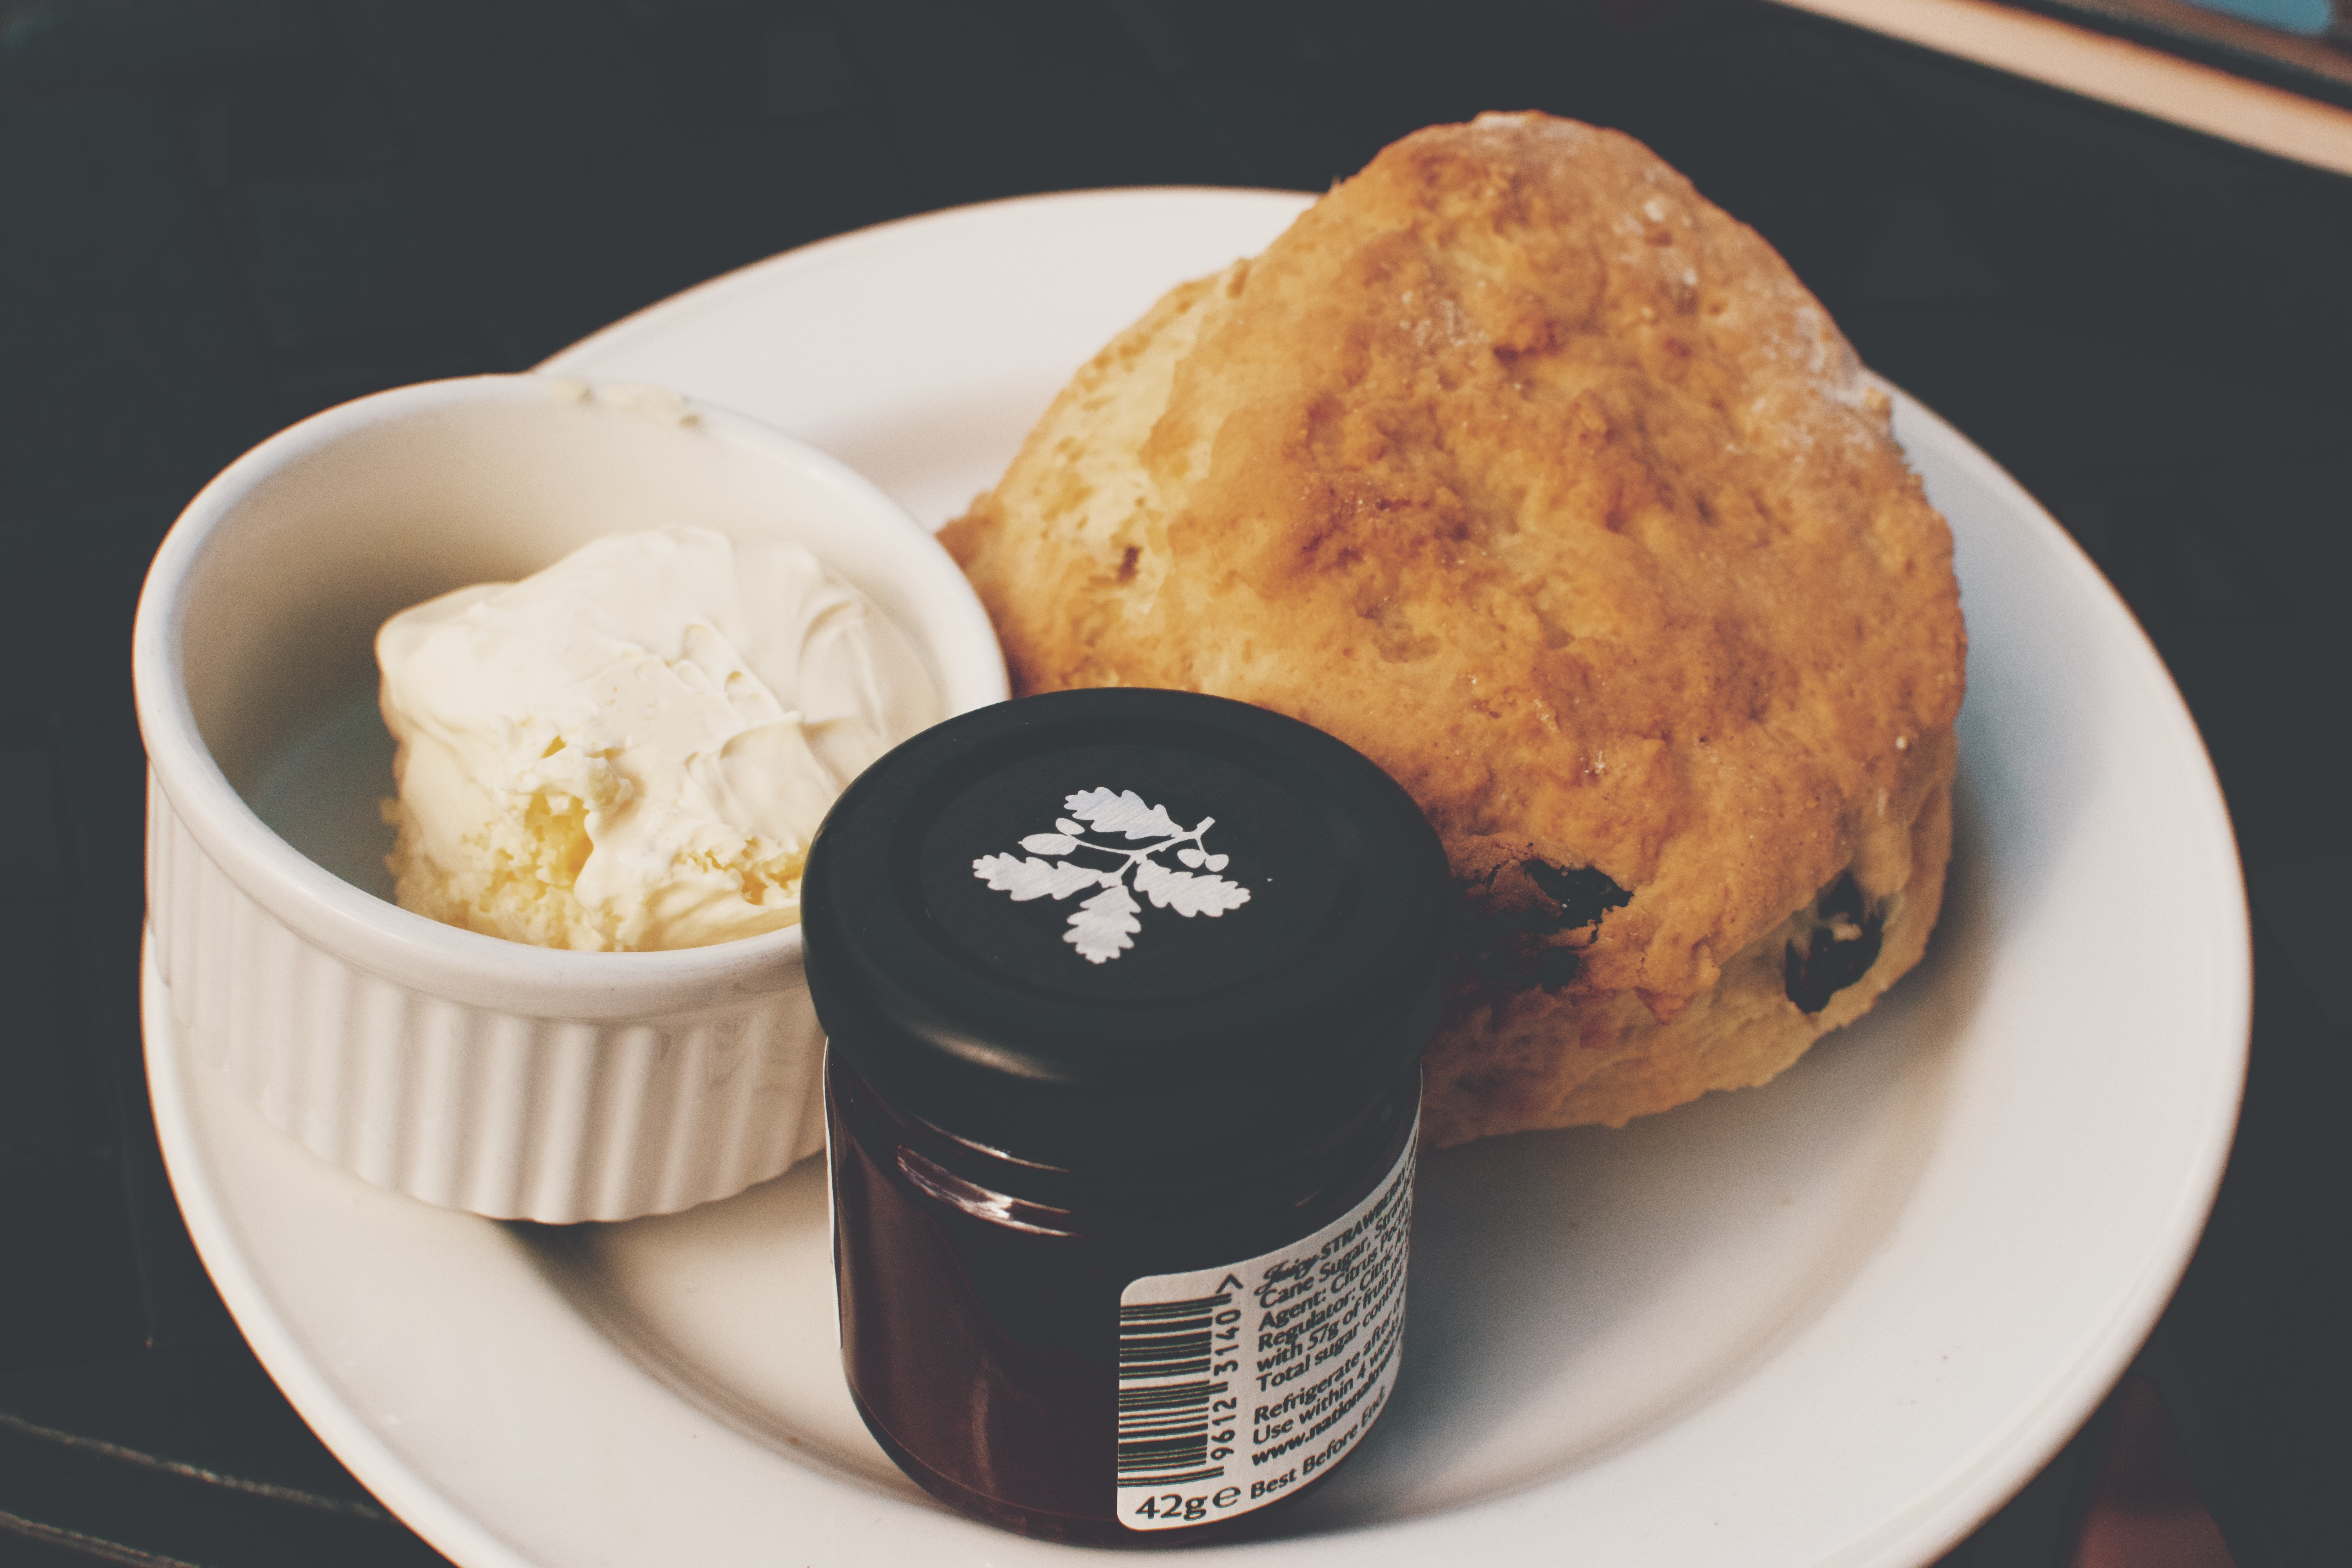 Hearty Health scones for afternoon tea